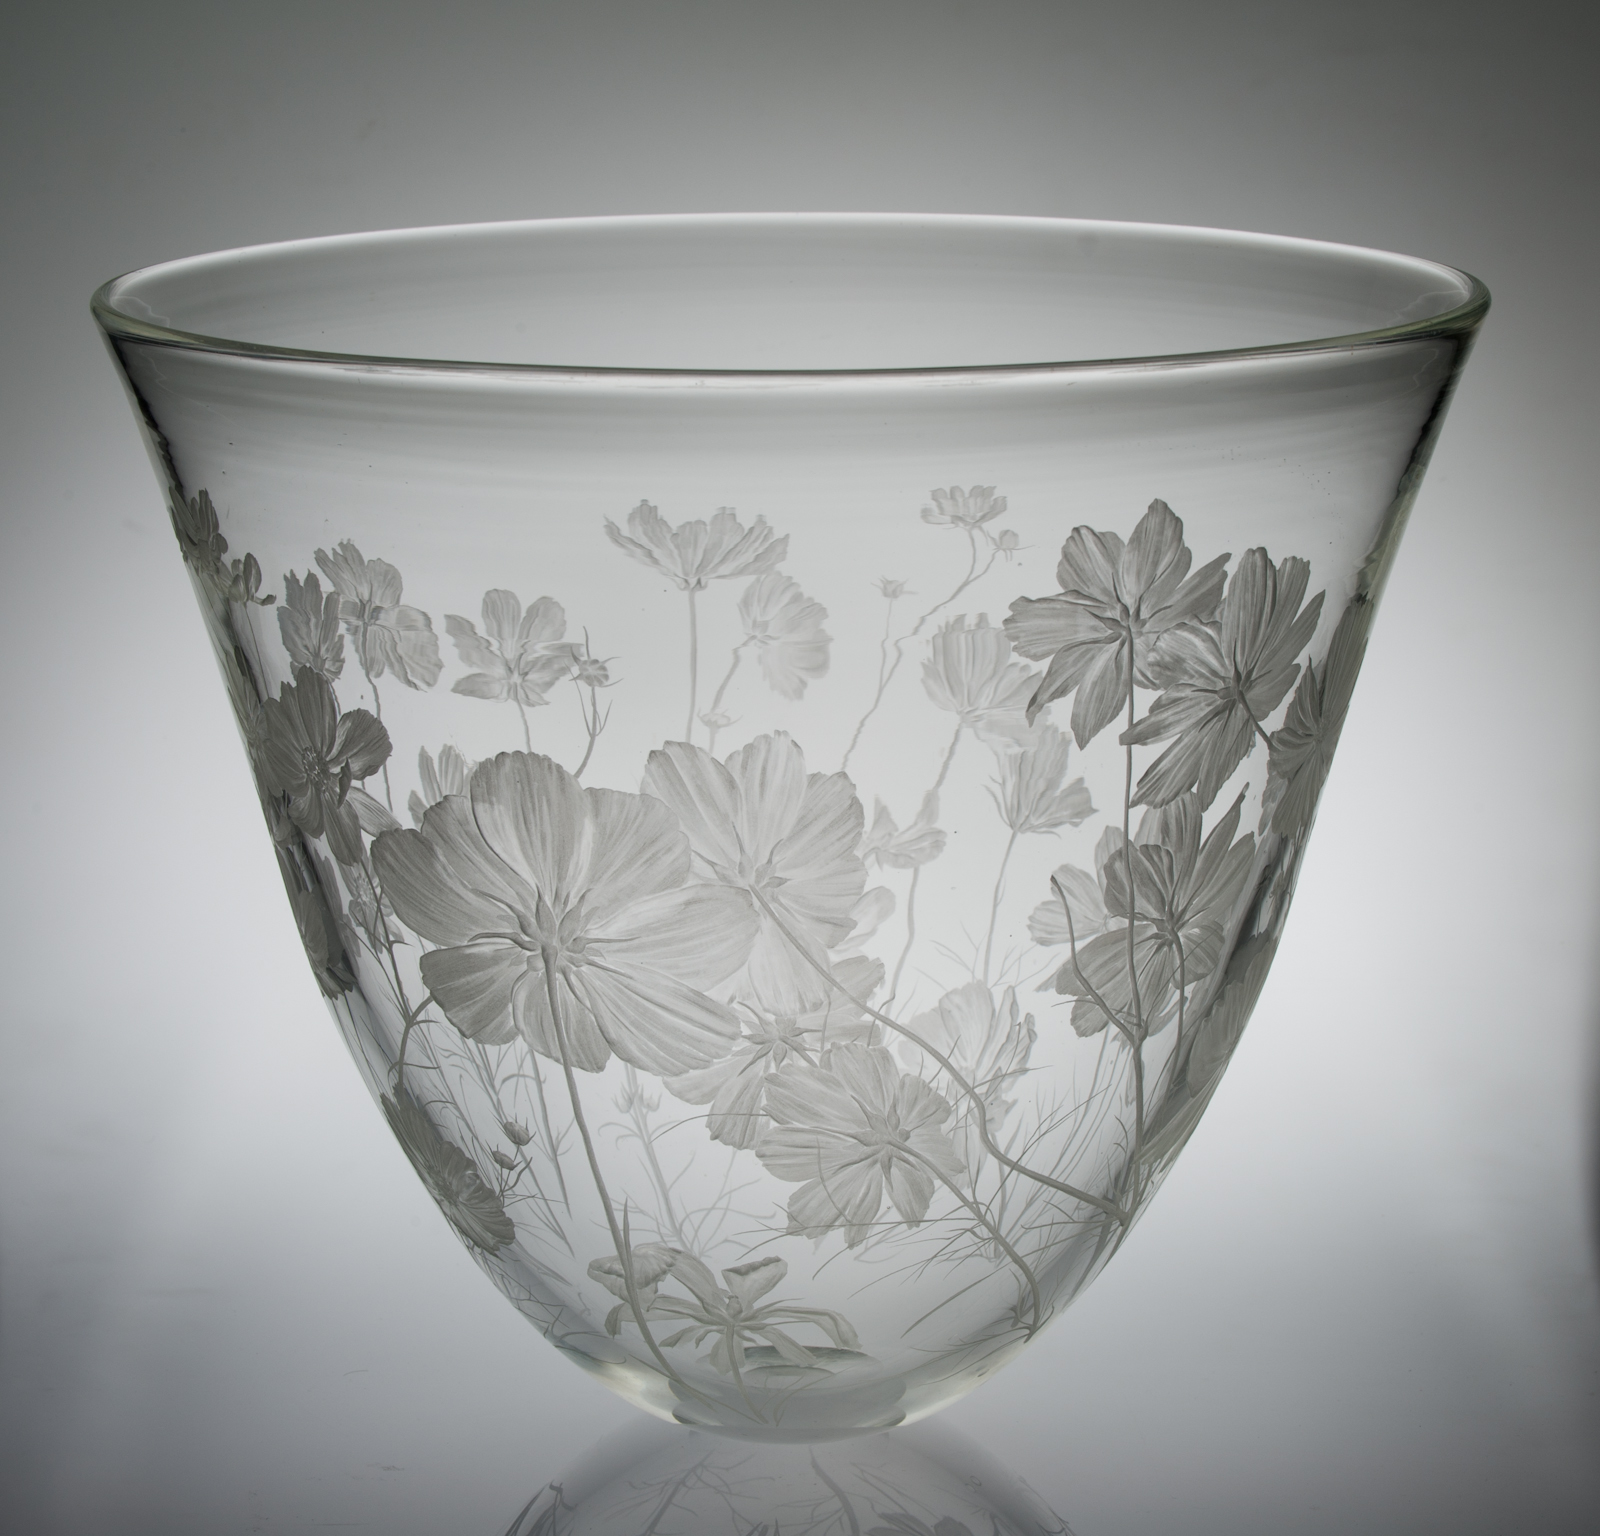 Miki Kubo - engraved glass